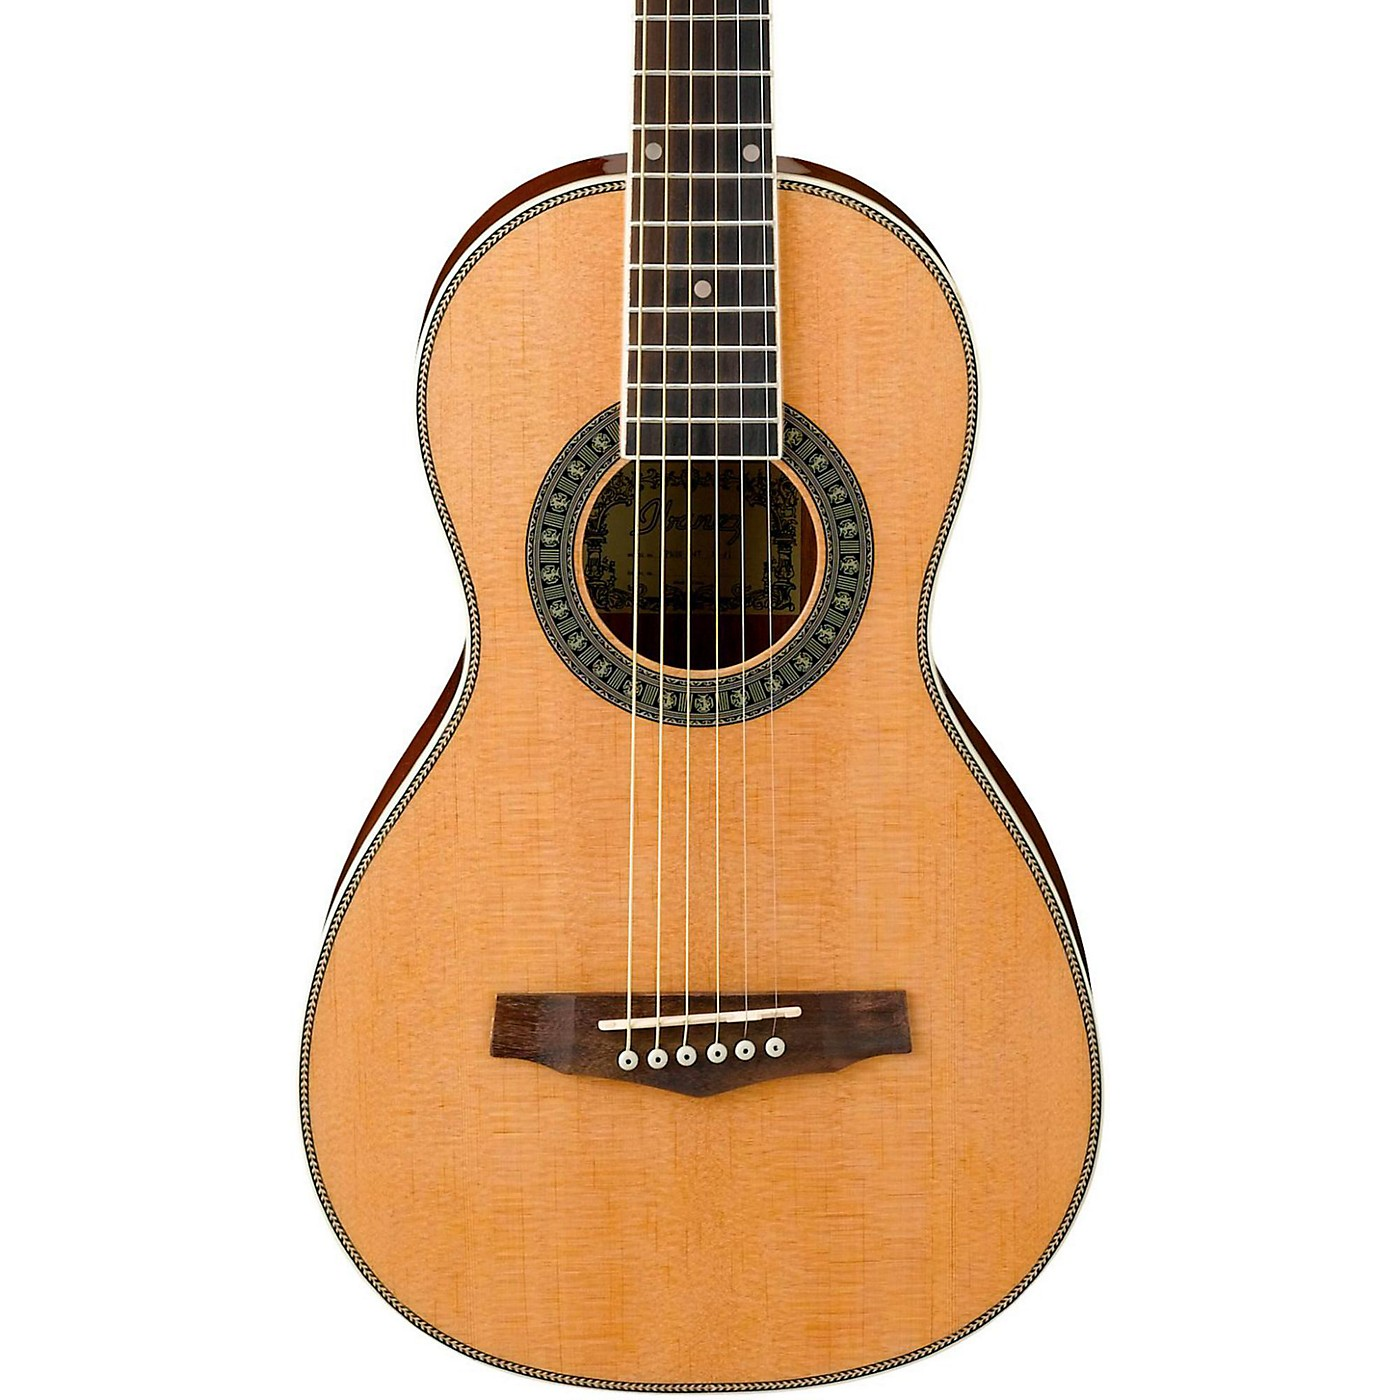 Ibanez Performance PN1-NT Acoustic Parlor Guitar thumbnail